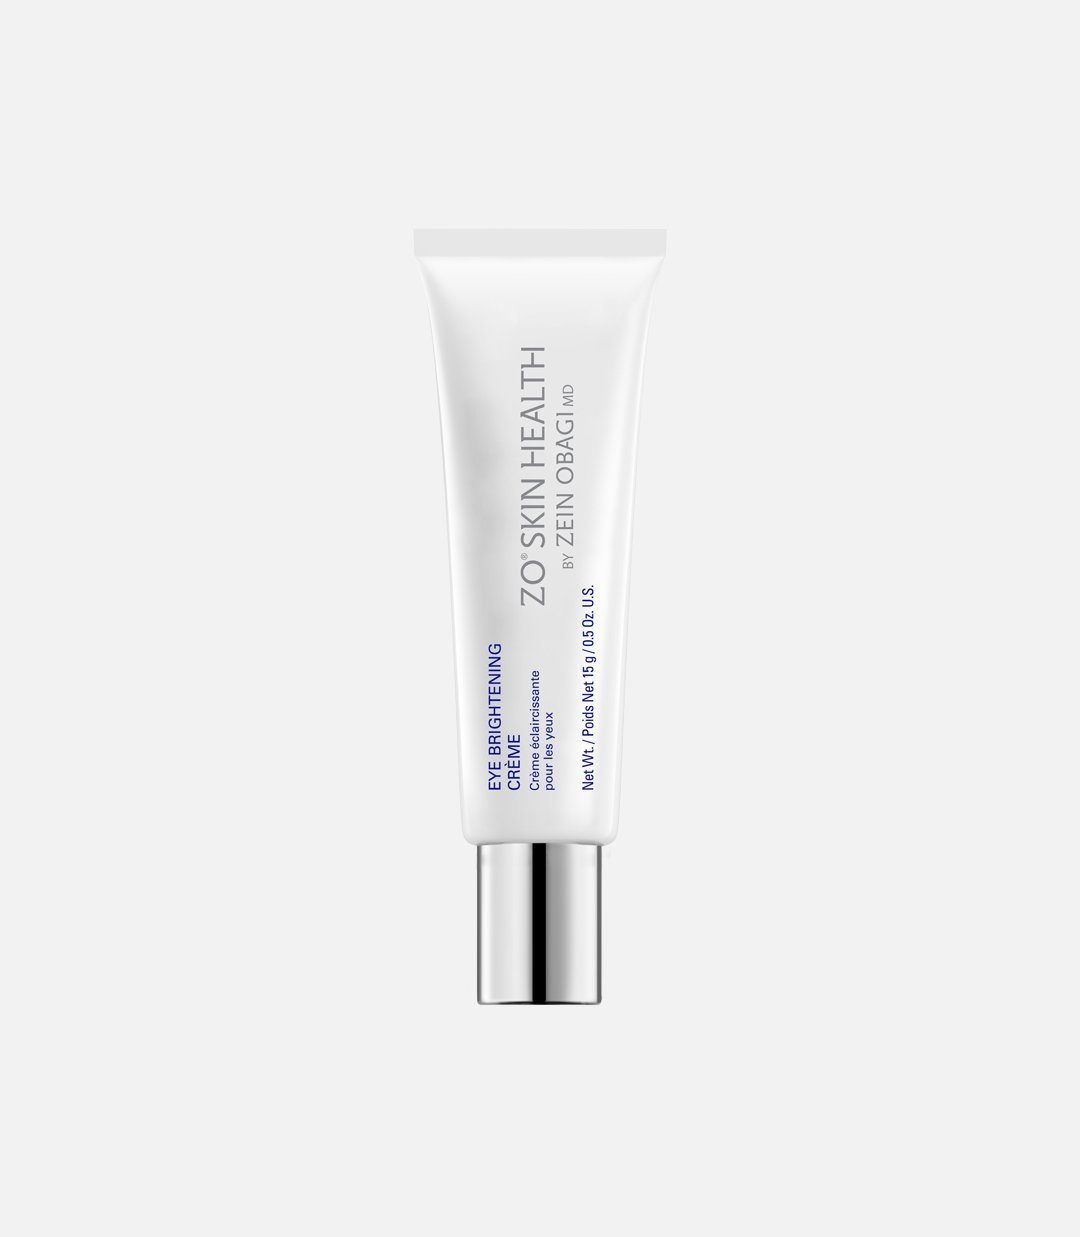 Eye Brightening Crème - 15 mL / 0.5 Fl. Oz. - 2